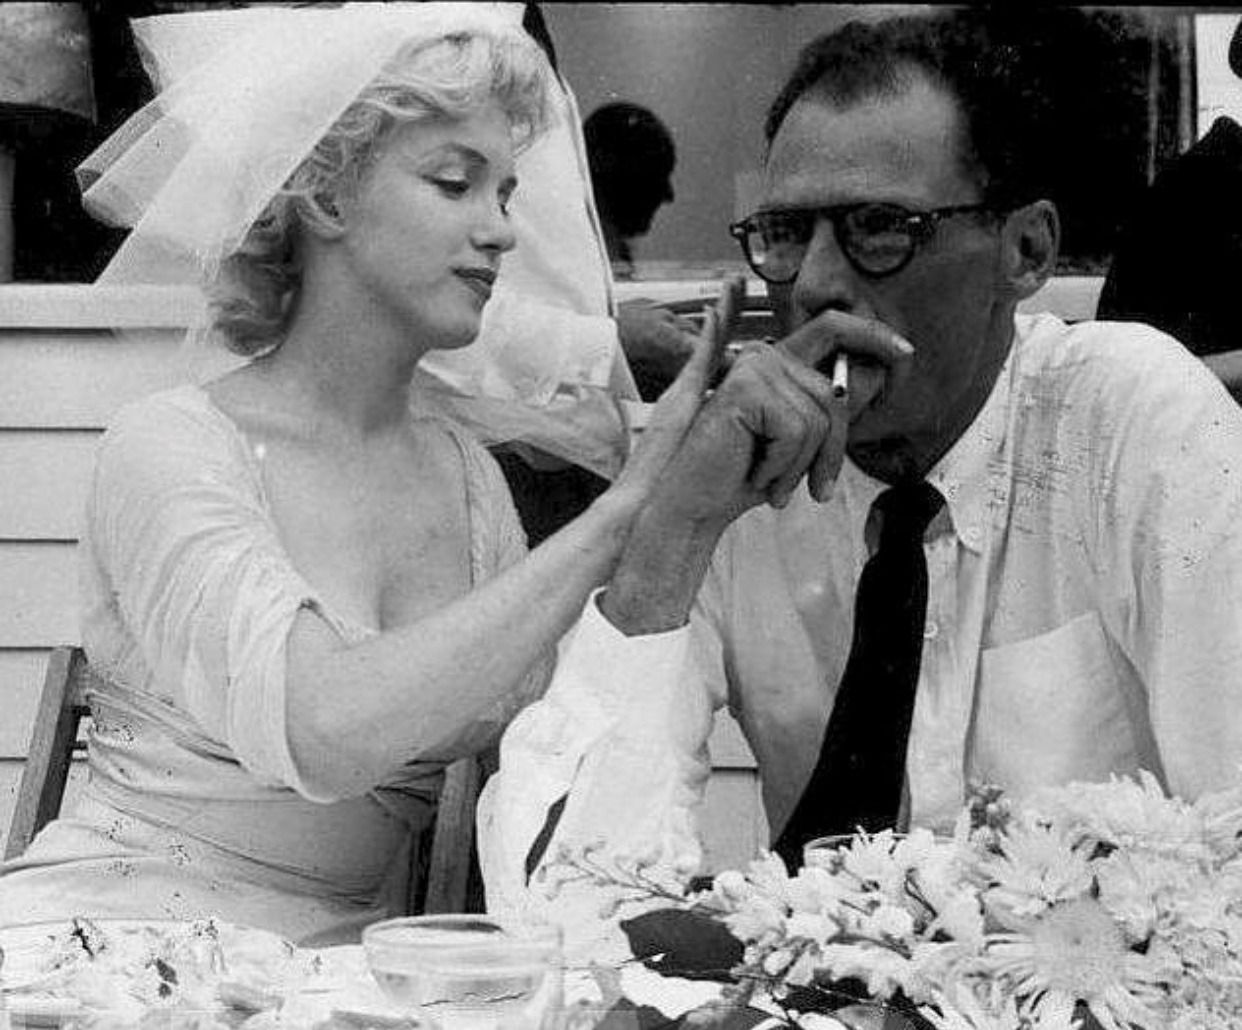 Marilyn Monroe Arthur Miller On Their Wedding Day June 29 1956 Marilyn Monroe Wedding Marilyn Marilyn Monroe Photos